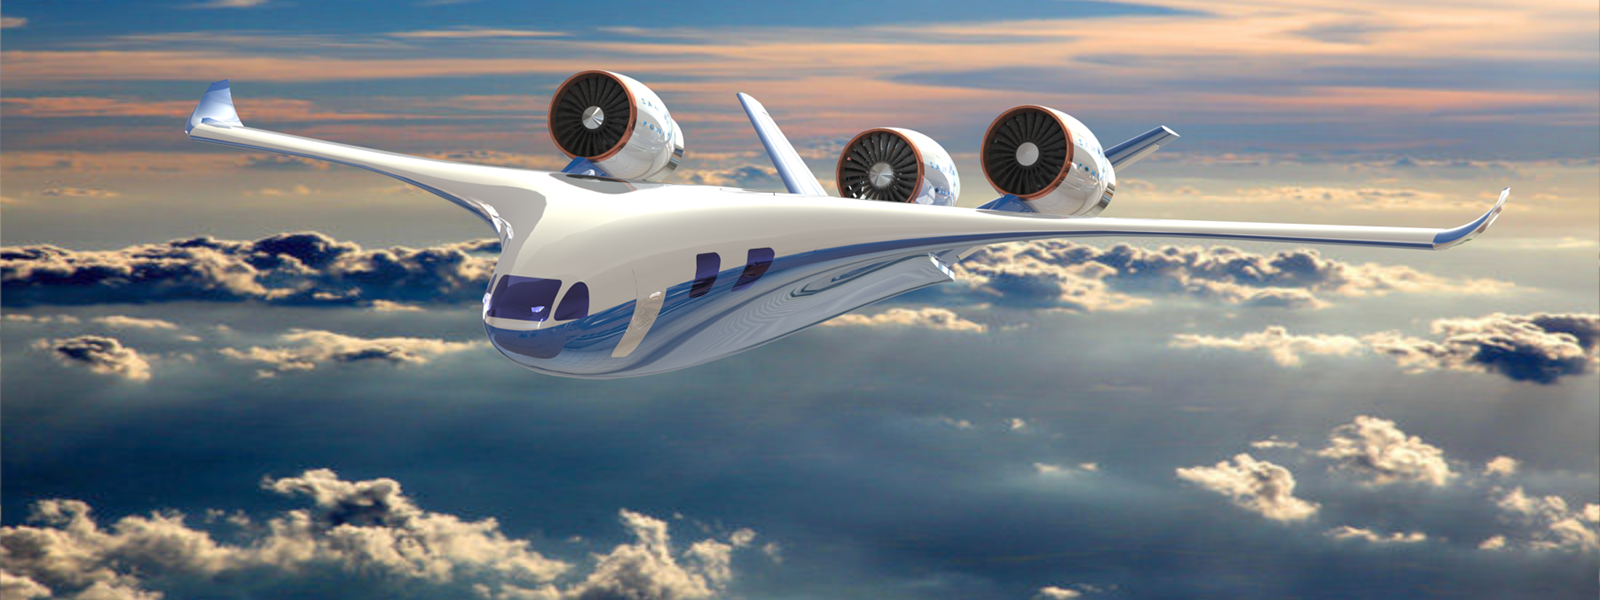 Hybrid-electric plane, artist's rendition